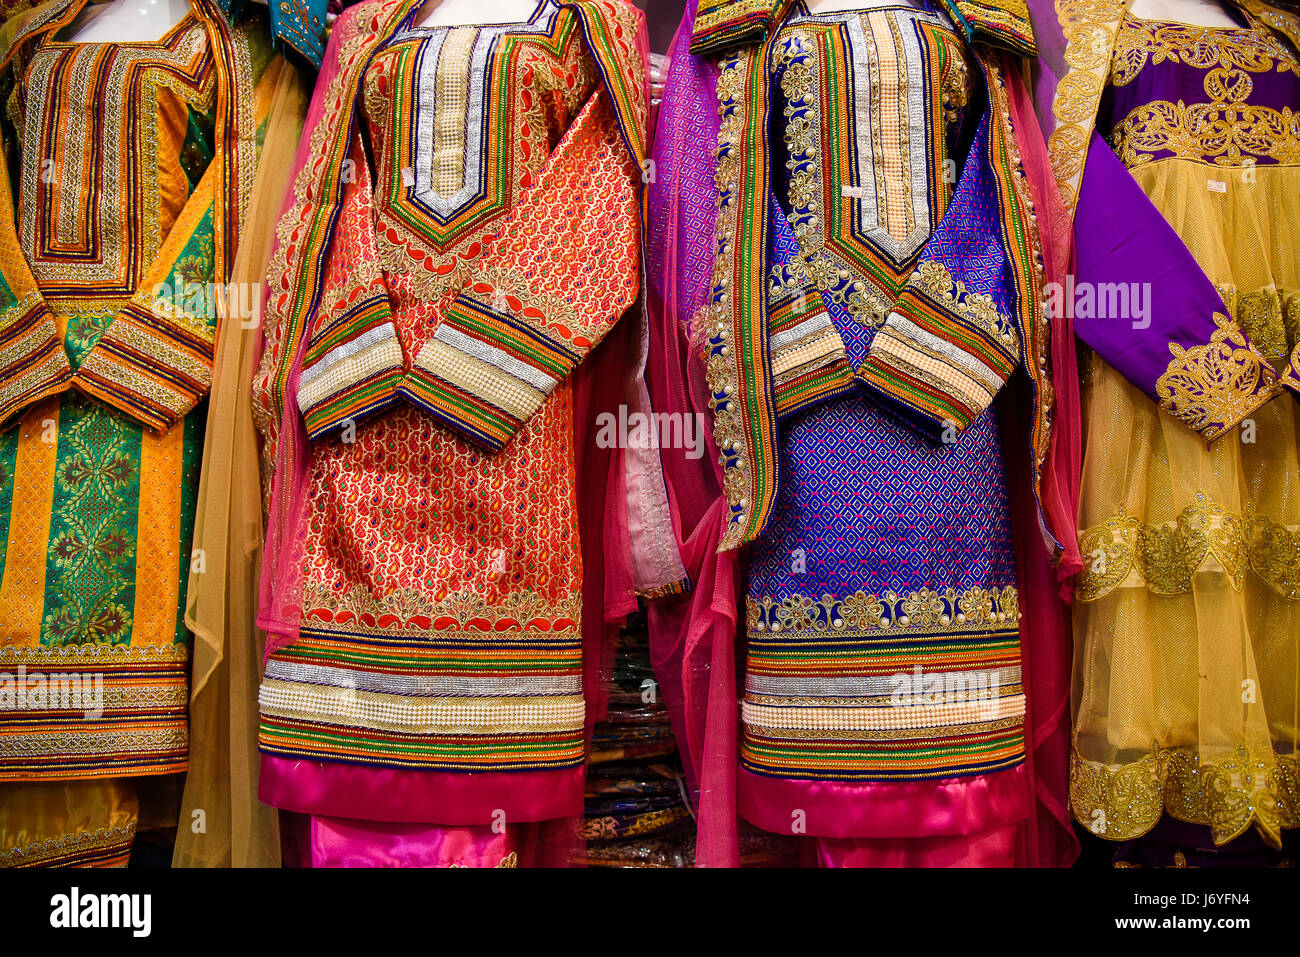 Oman Muscat  Traditional garments - Stock Image